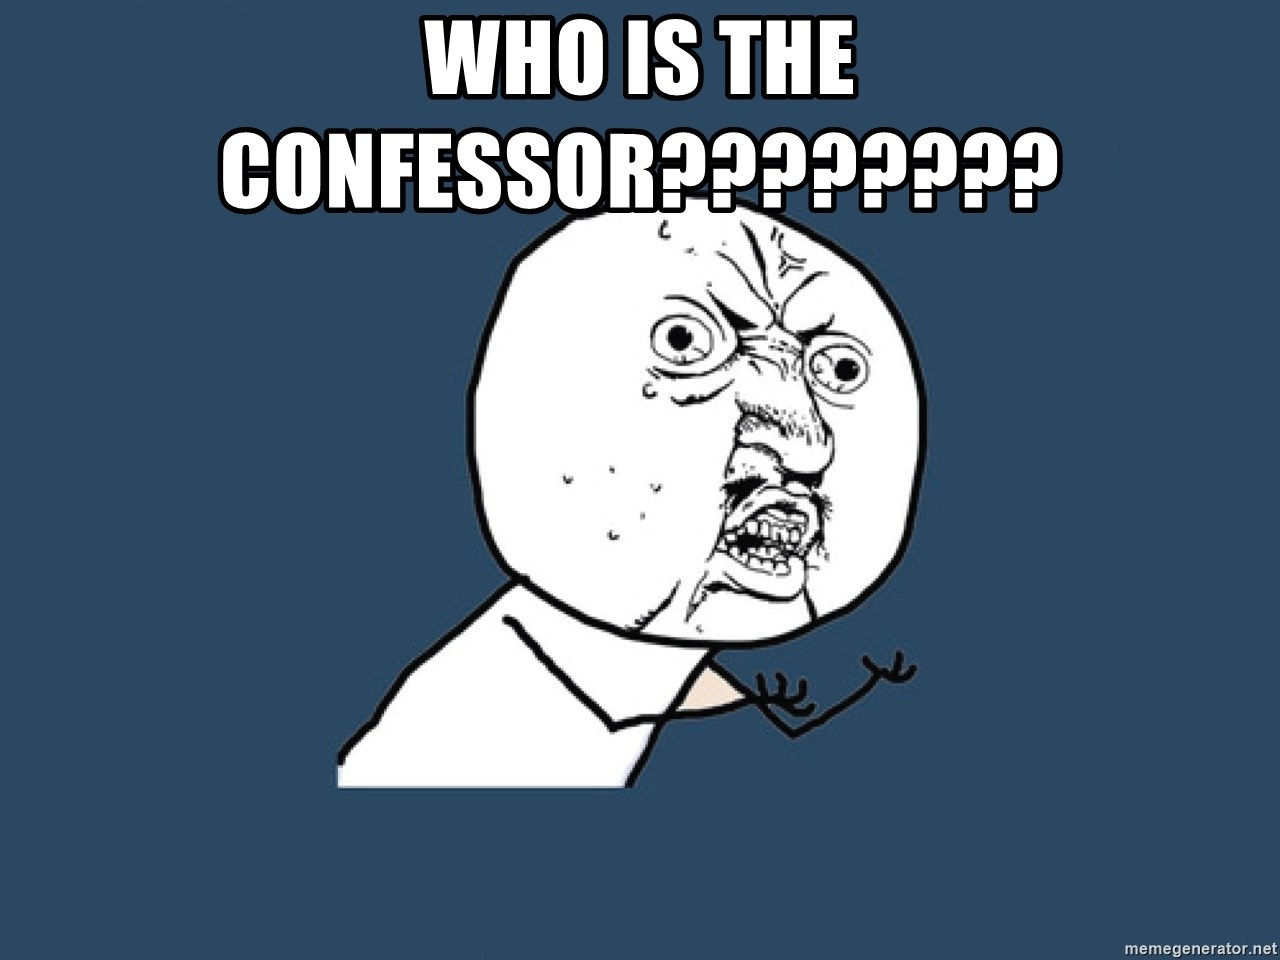 Y U No - who is the confessor????????